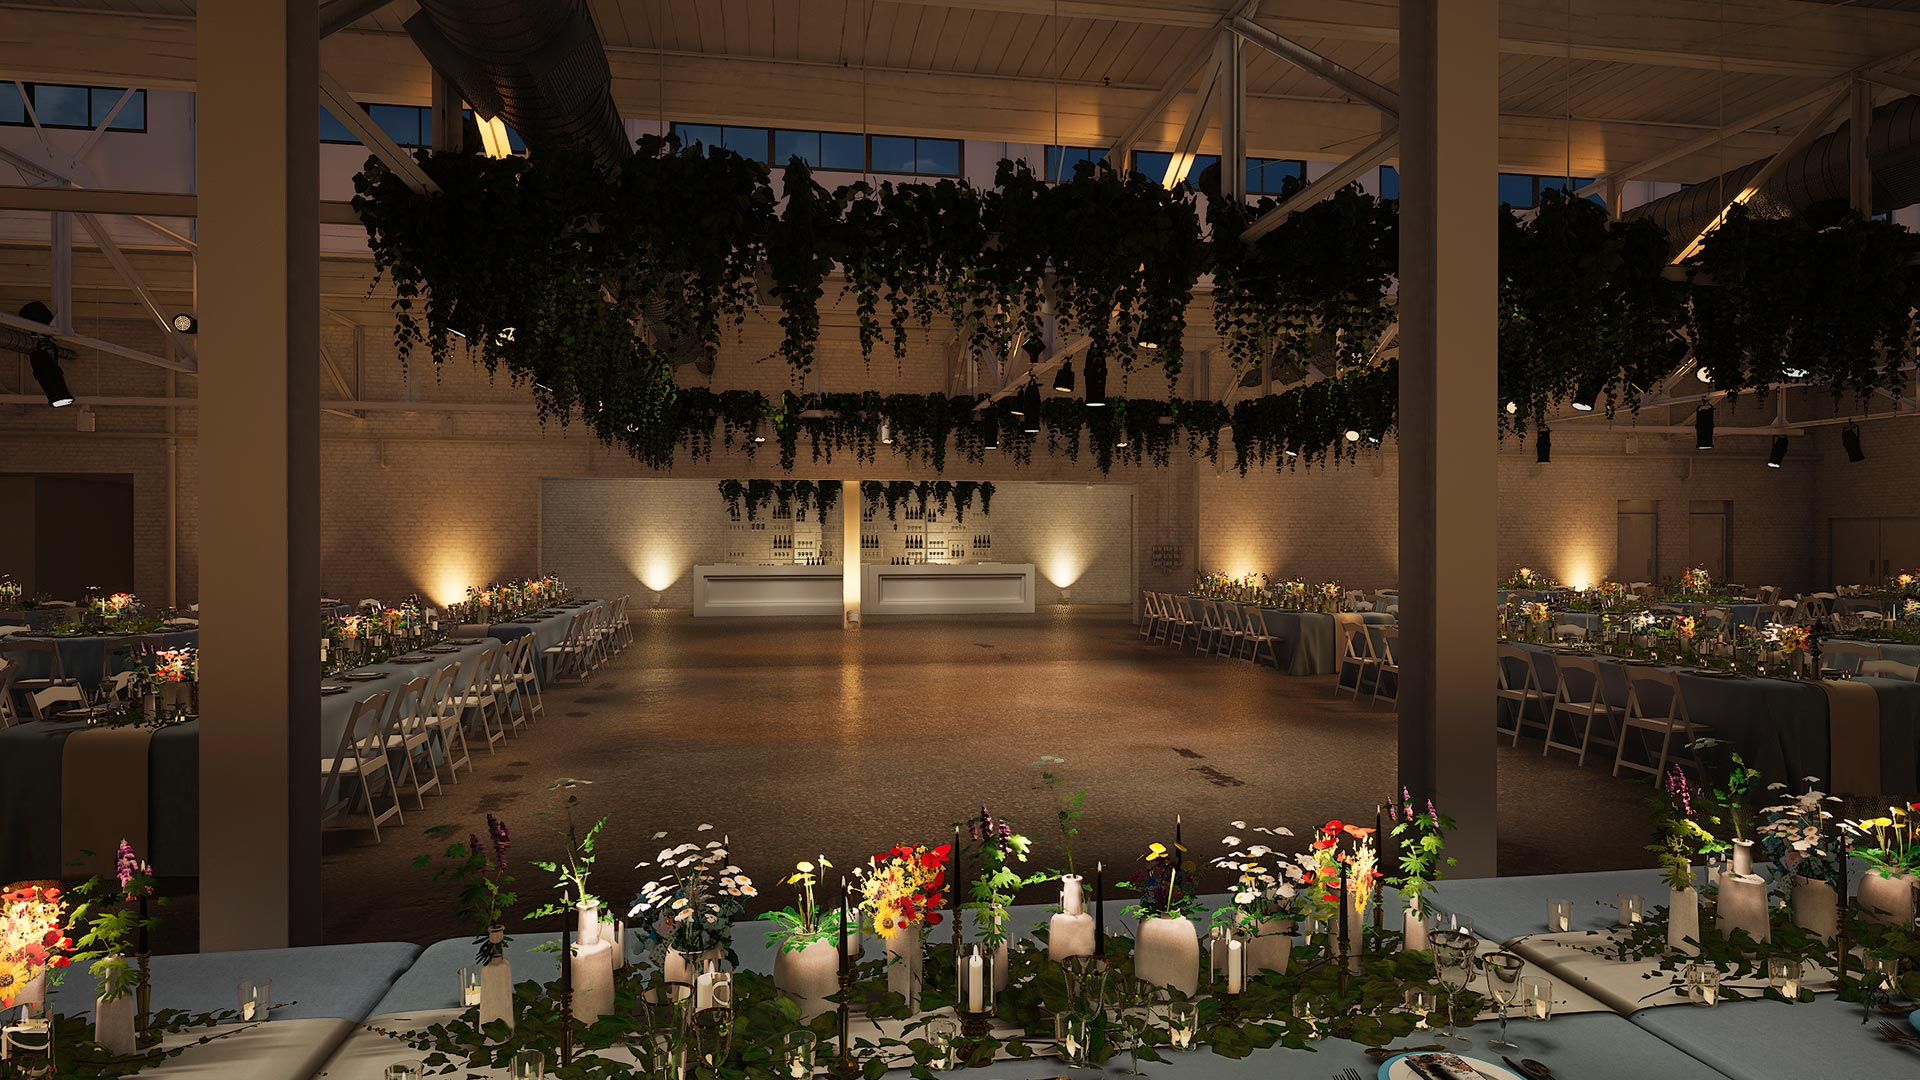 dinner head table view evening The Madison - Cleveland's Event Reception Venue for Parties